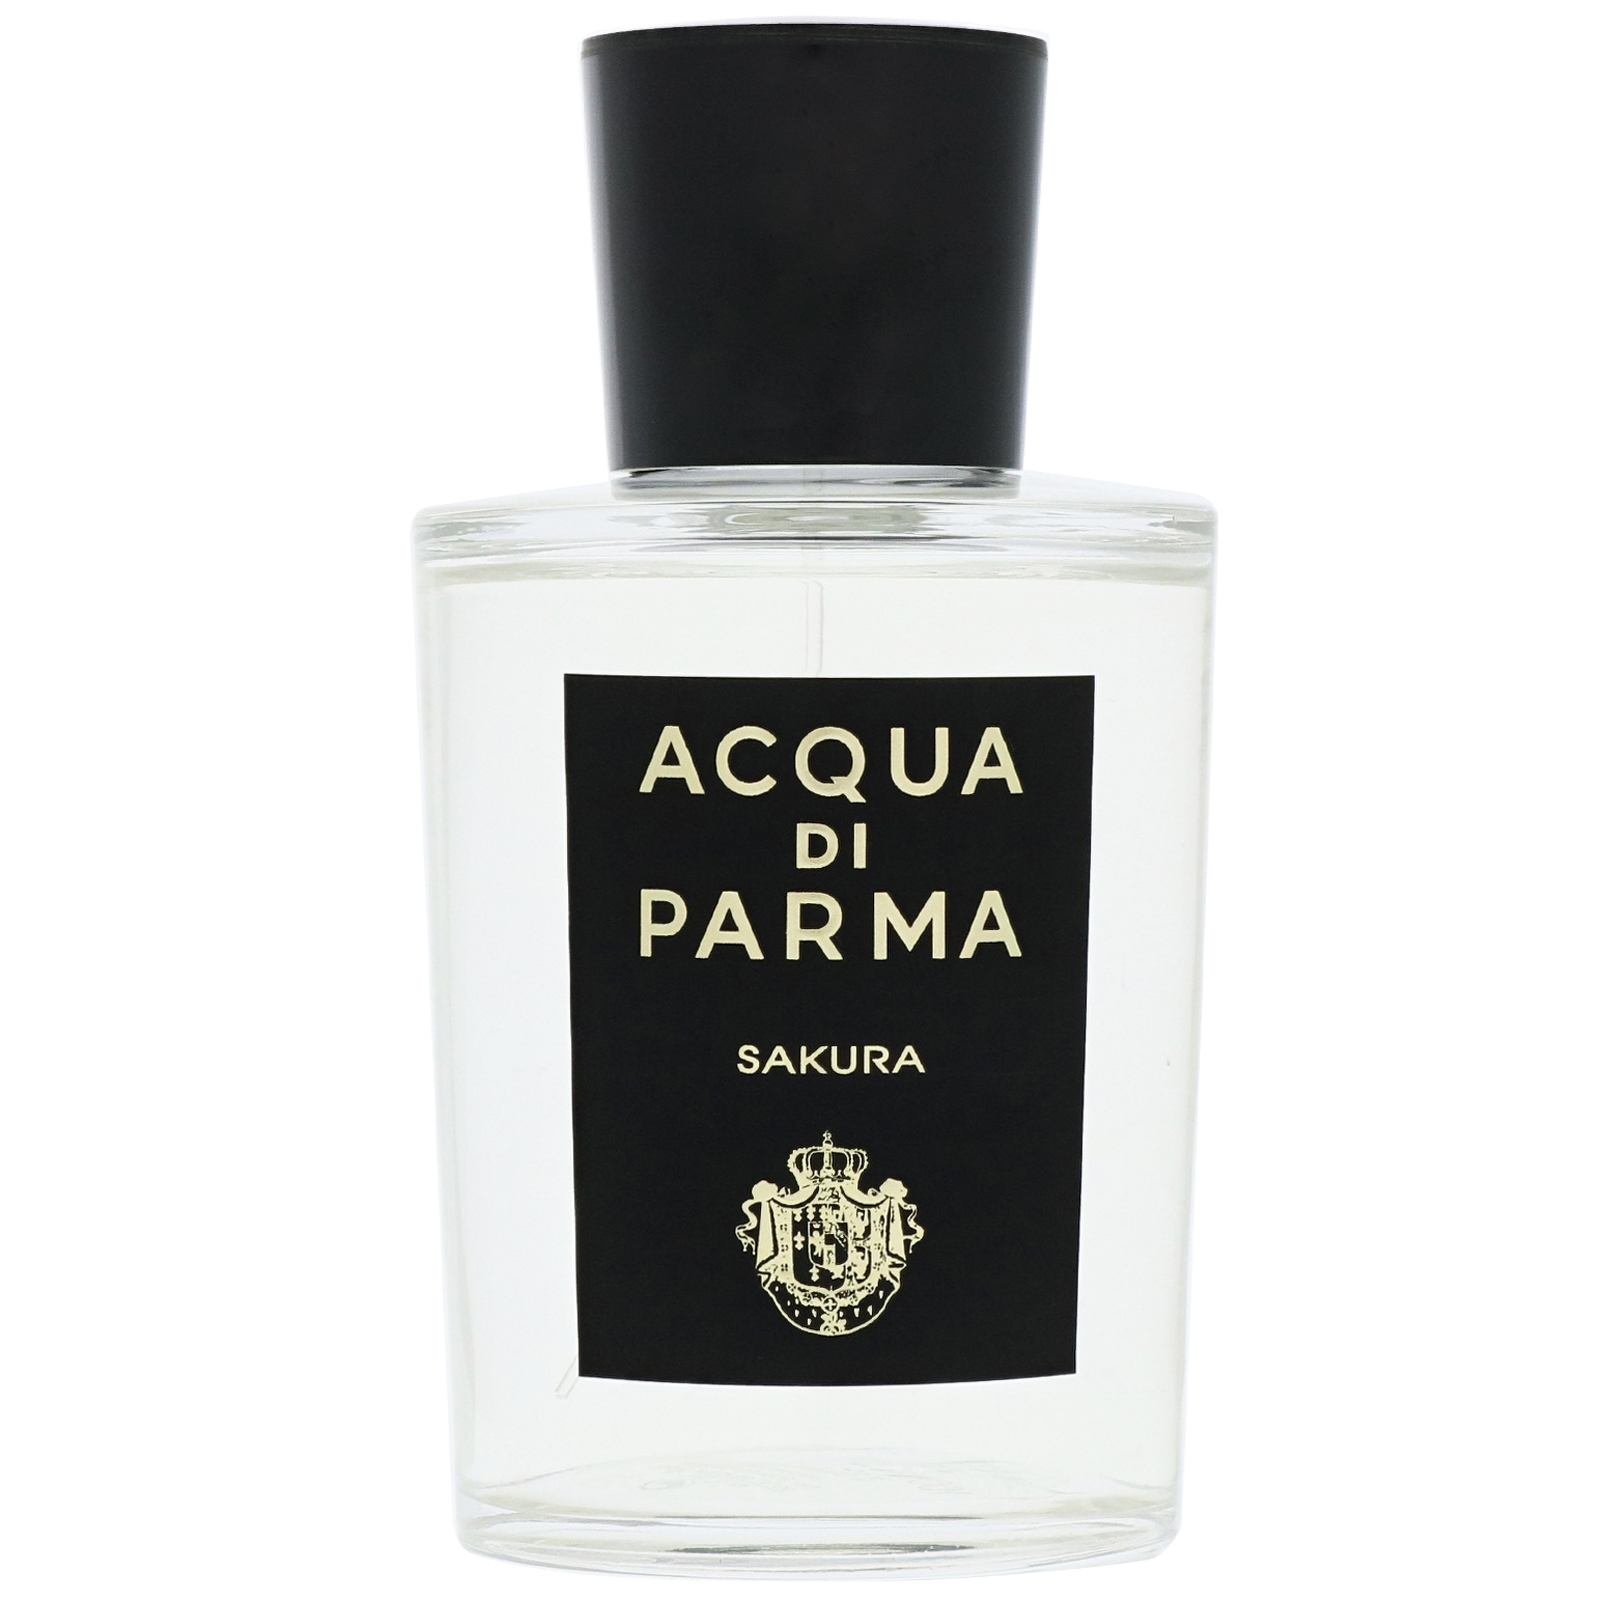 Acqua Di Parma Sakura Eau de Parfum Spray 100ml